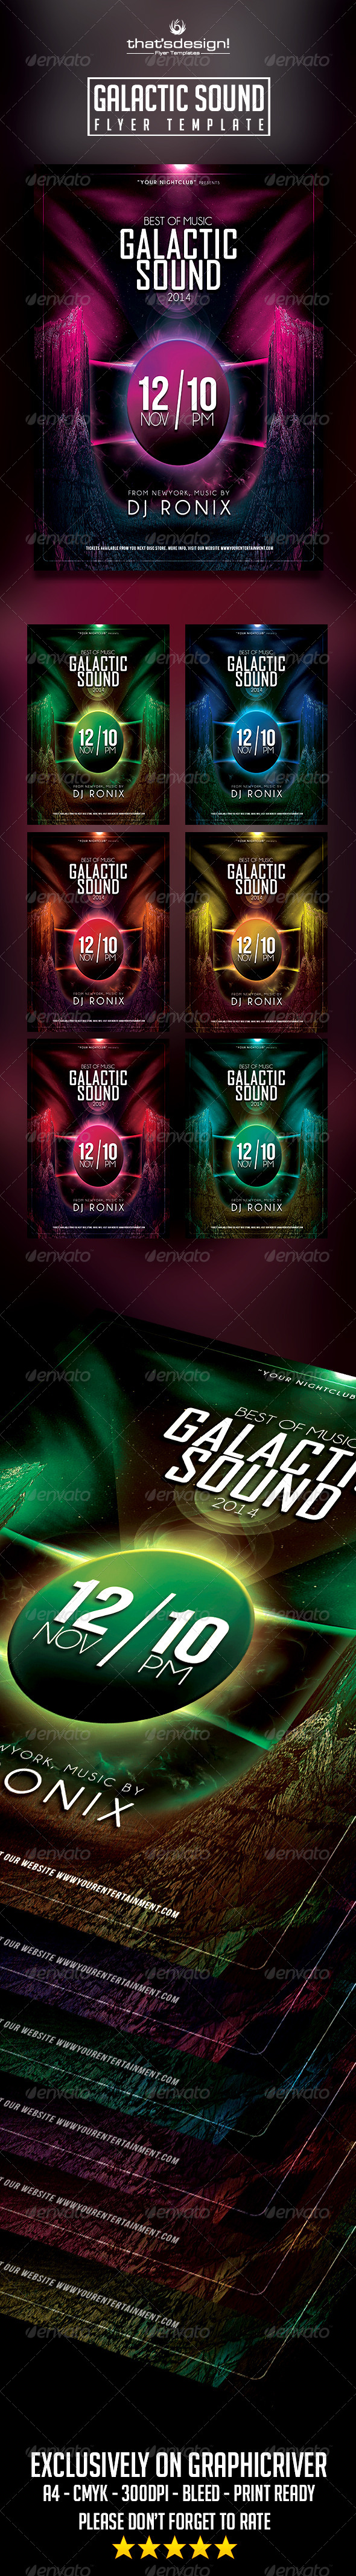 Galactic Sound Flyer V2 - Clubs & Parties Events